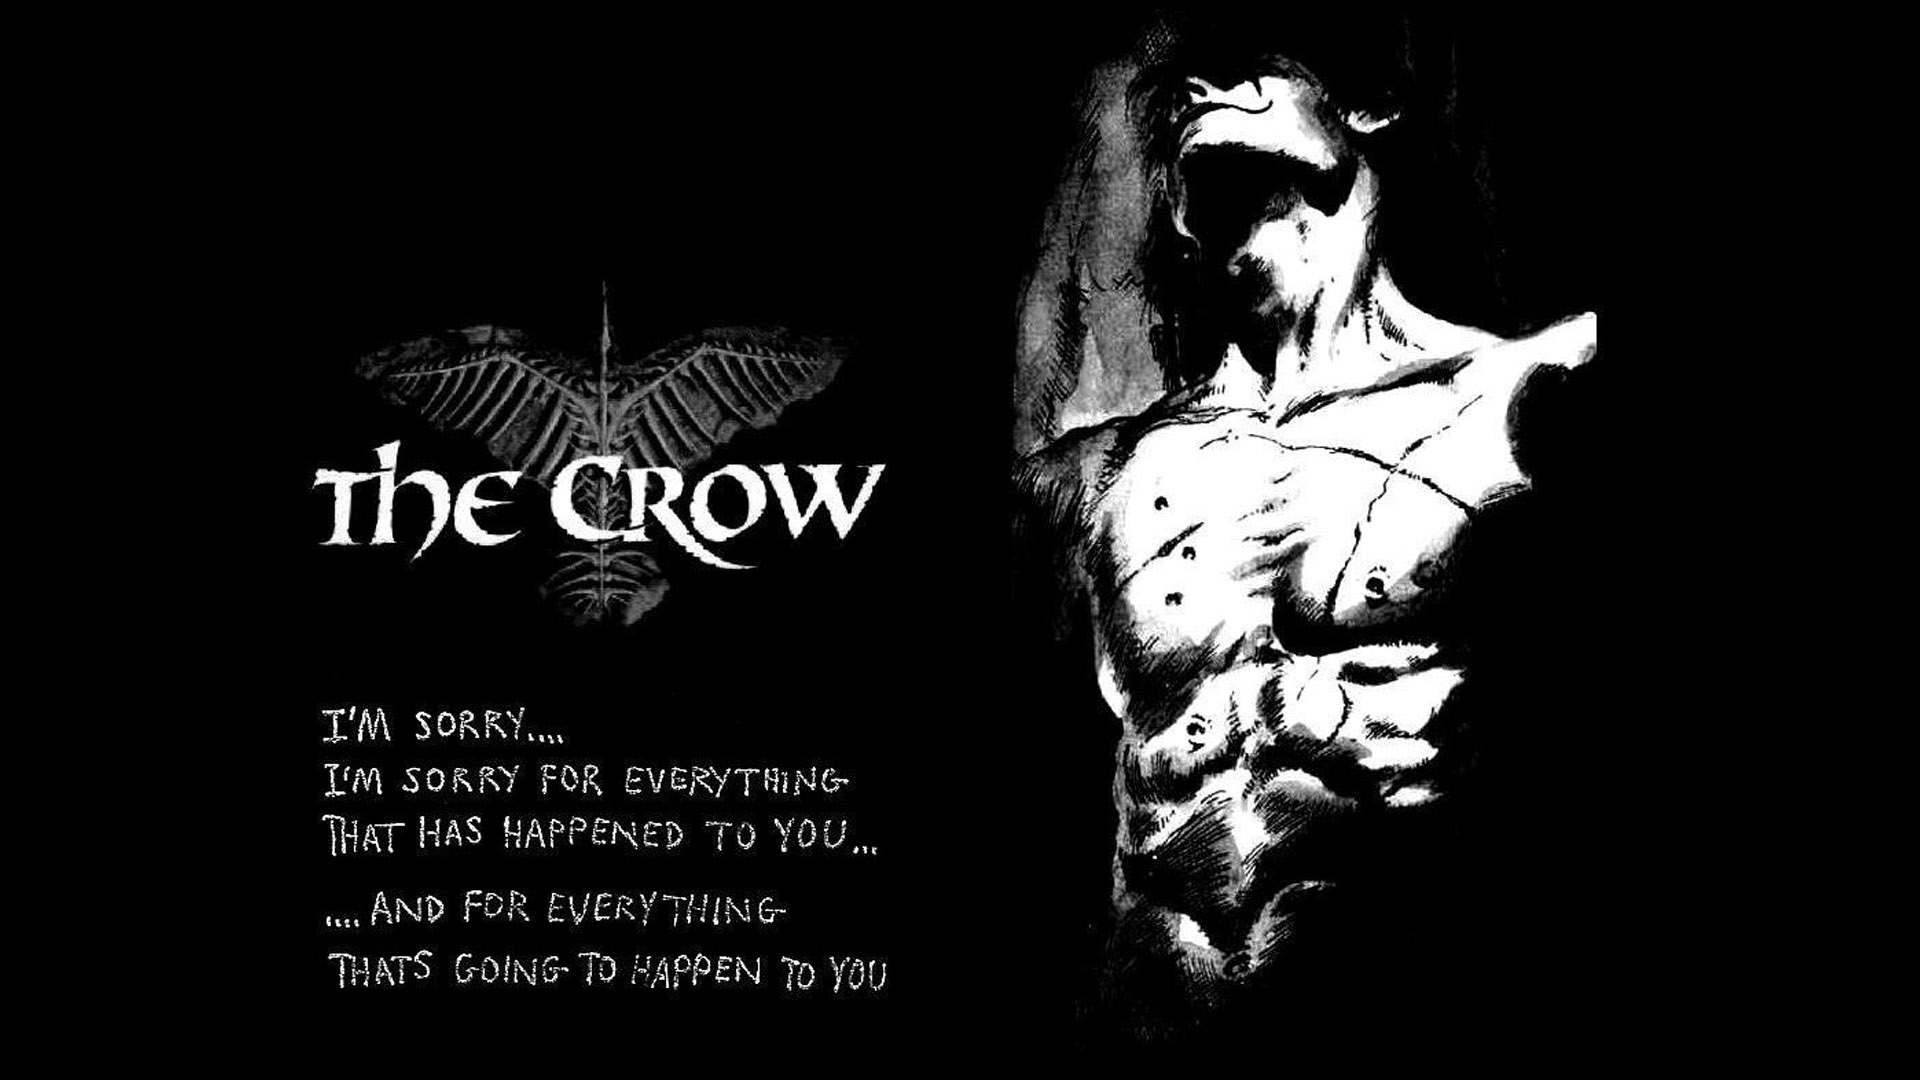 The crow wallpaper by wild huntress on deviantart - The crow wallpaper ...